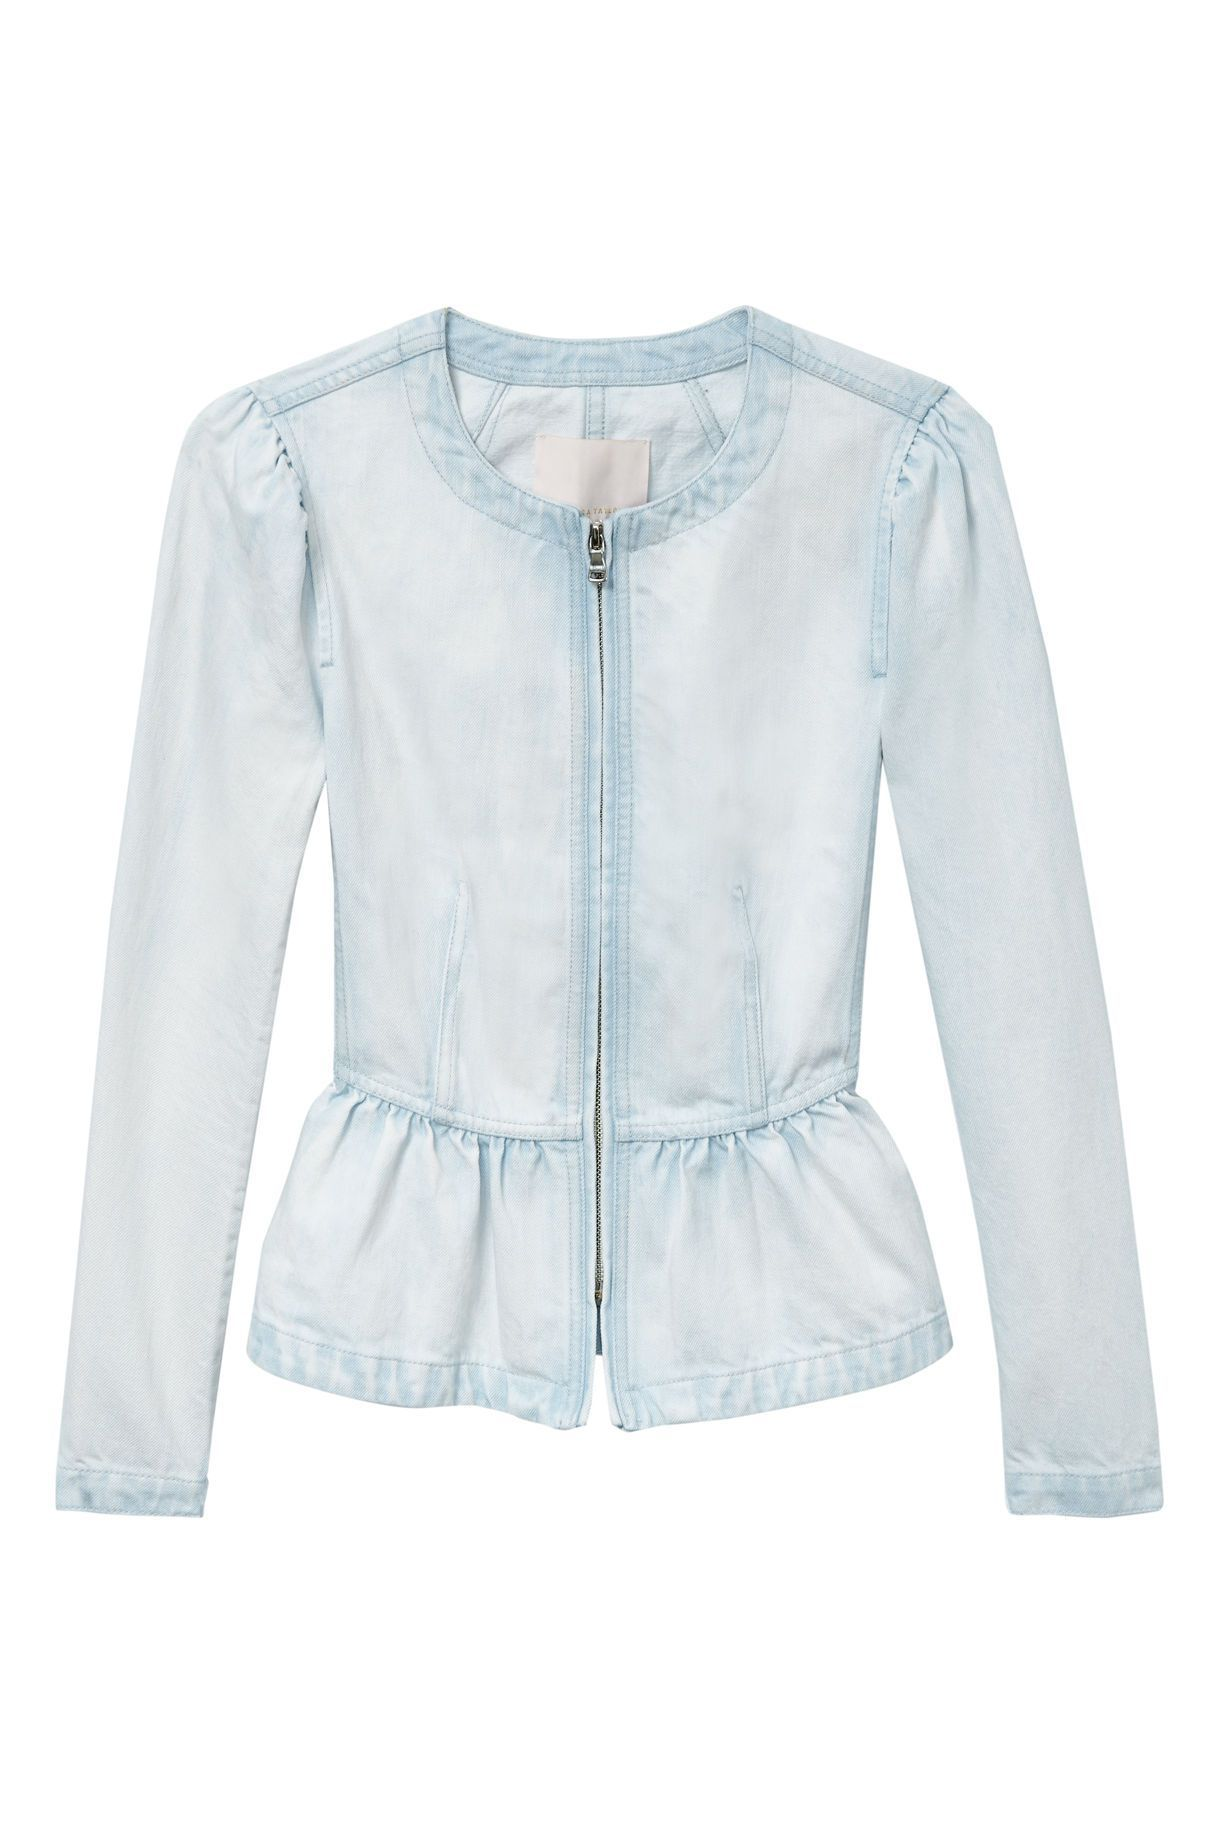 Denim Peplum Jacket rebeccataylor.com $375.00 SHOP NOW This Victorian-inspired denim jacket is perfect for the office.